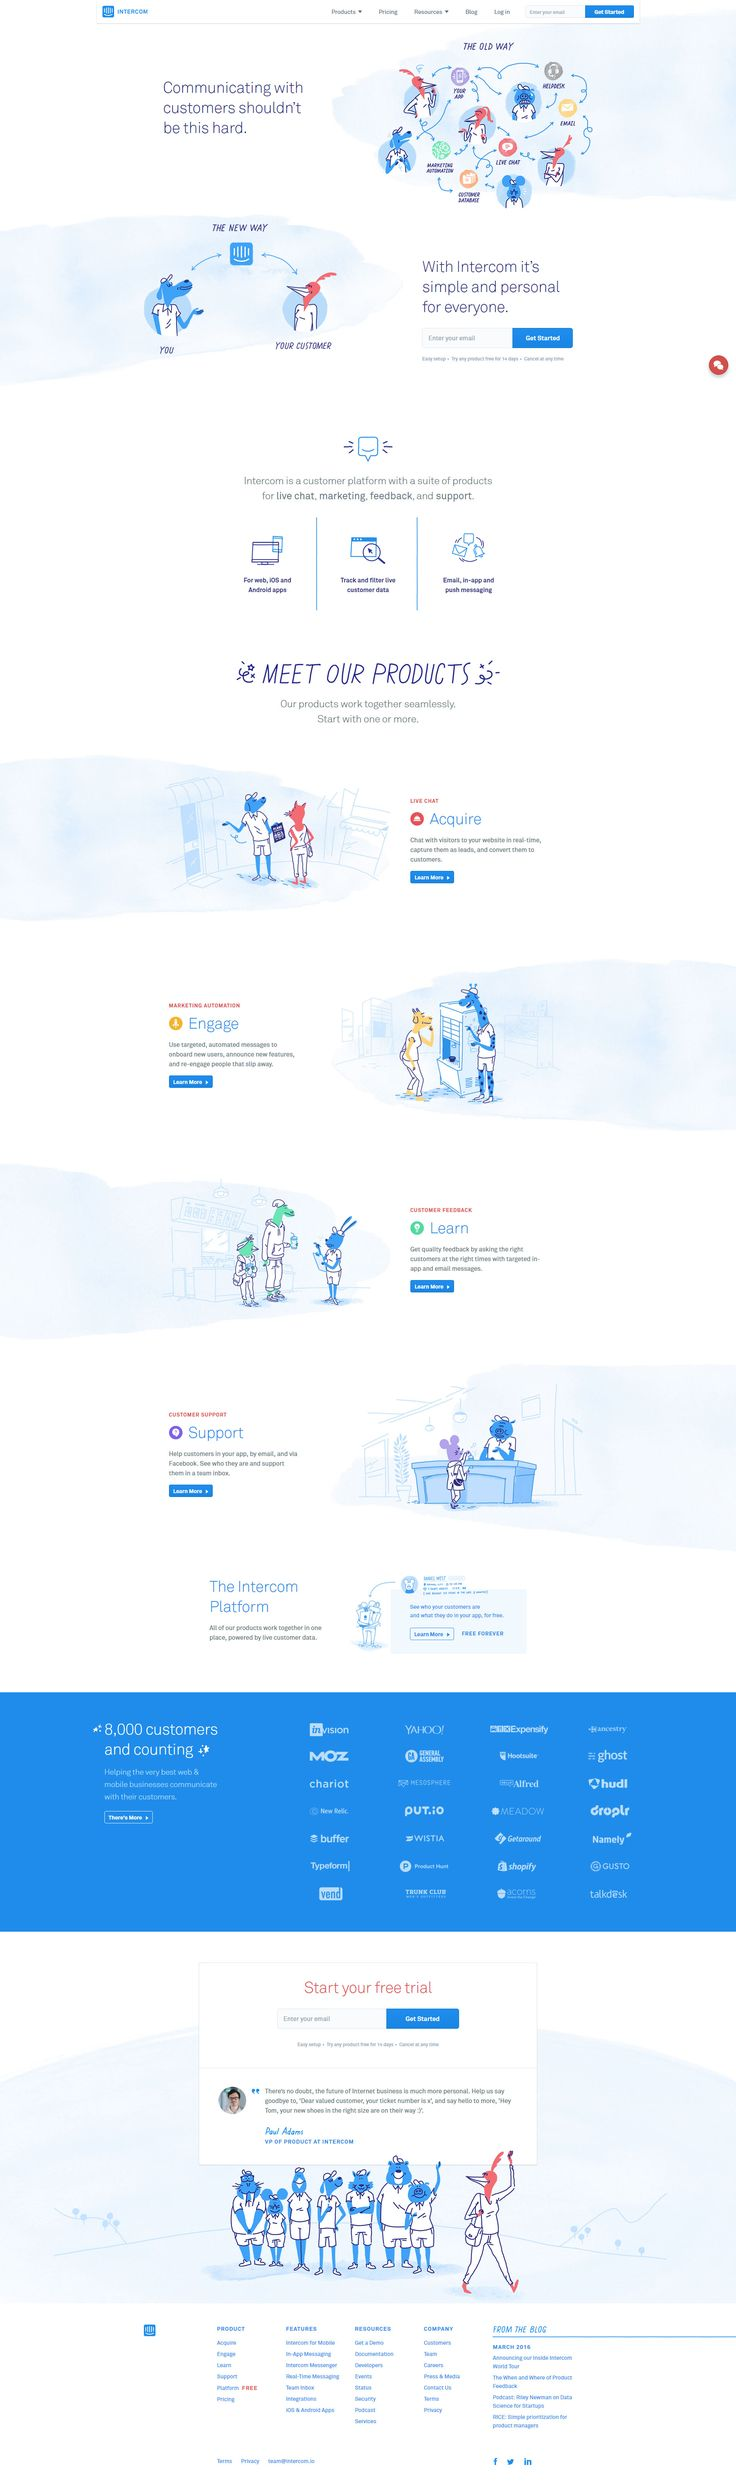 Intercom website - https://www.intercom.io/